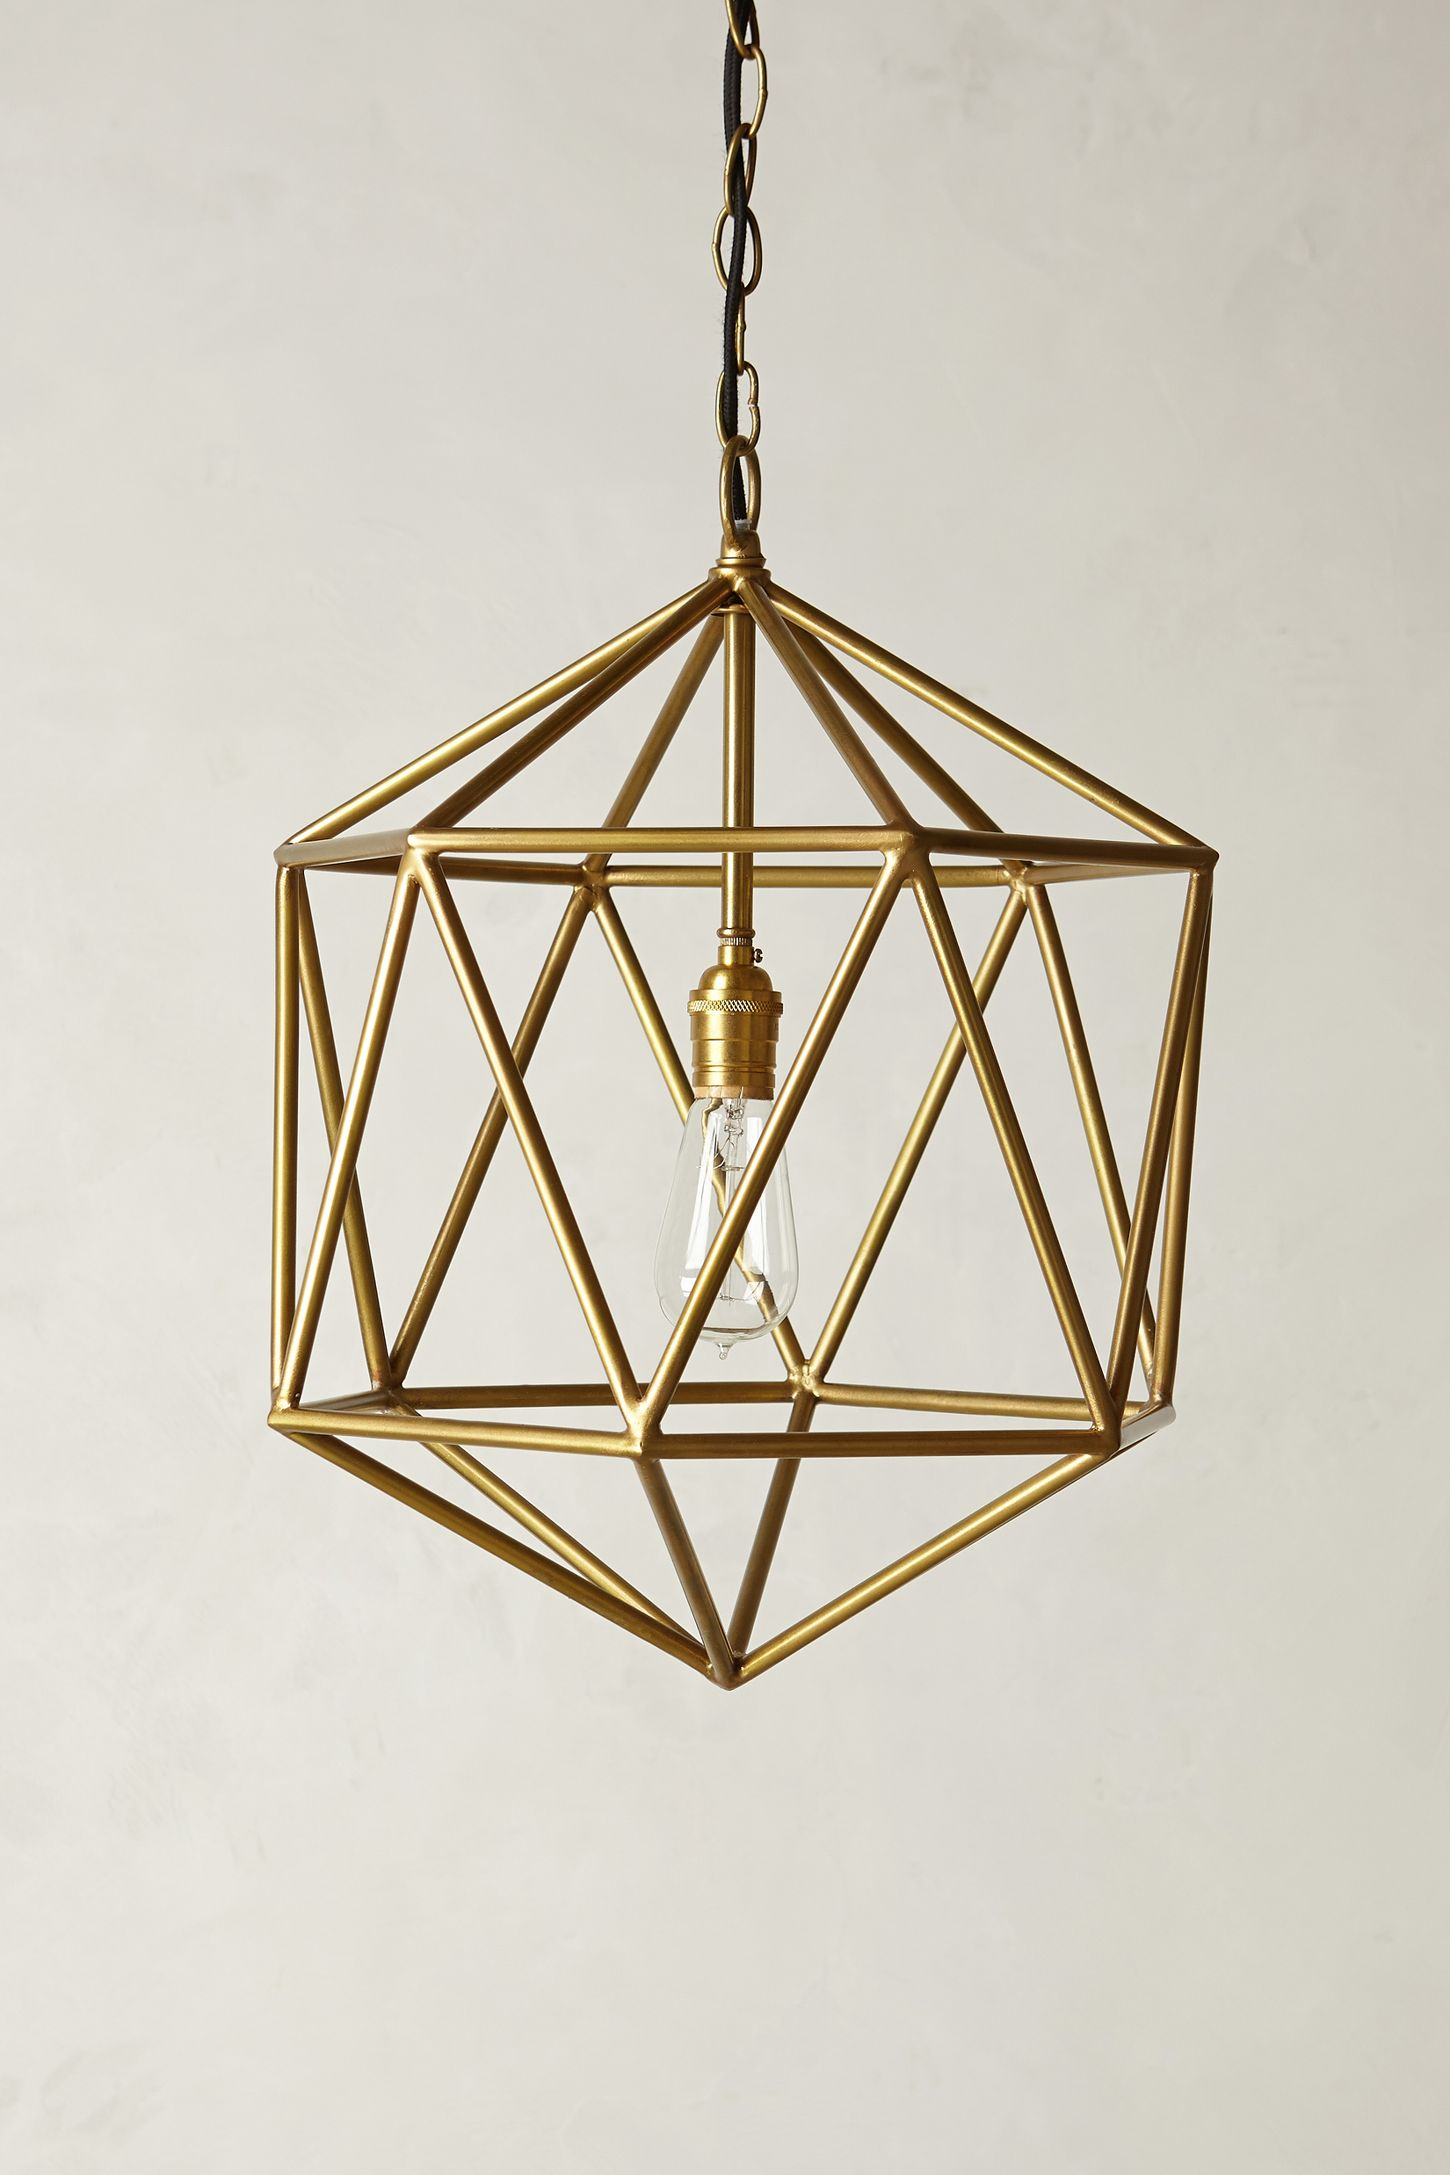 Euclidean pendant faceted orb anthropologie aloadofball Images